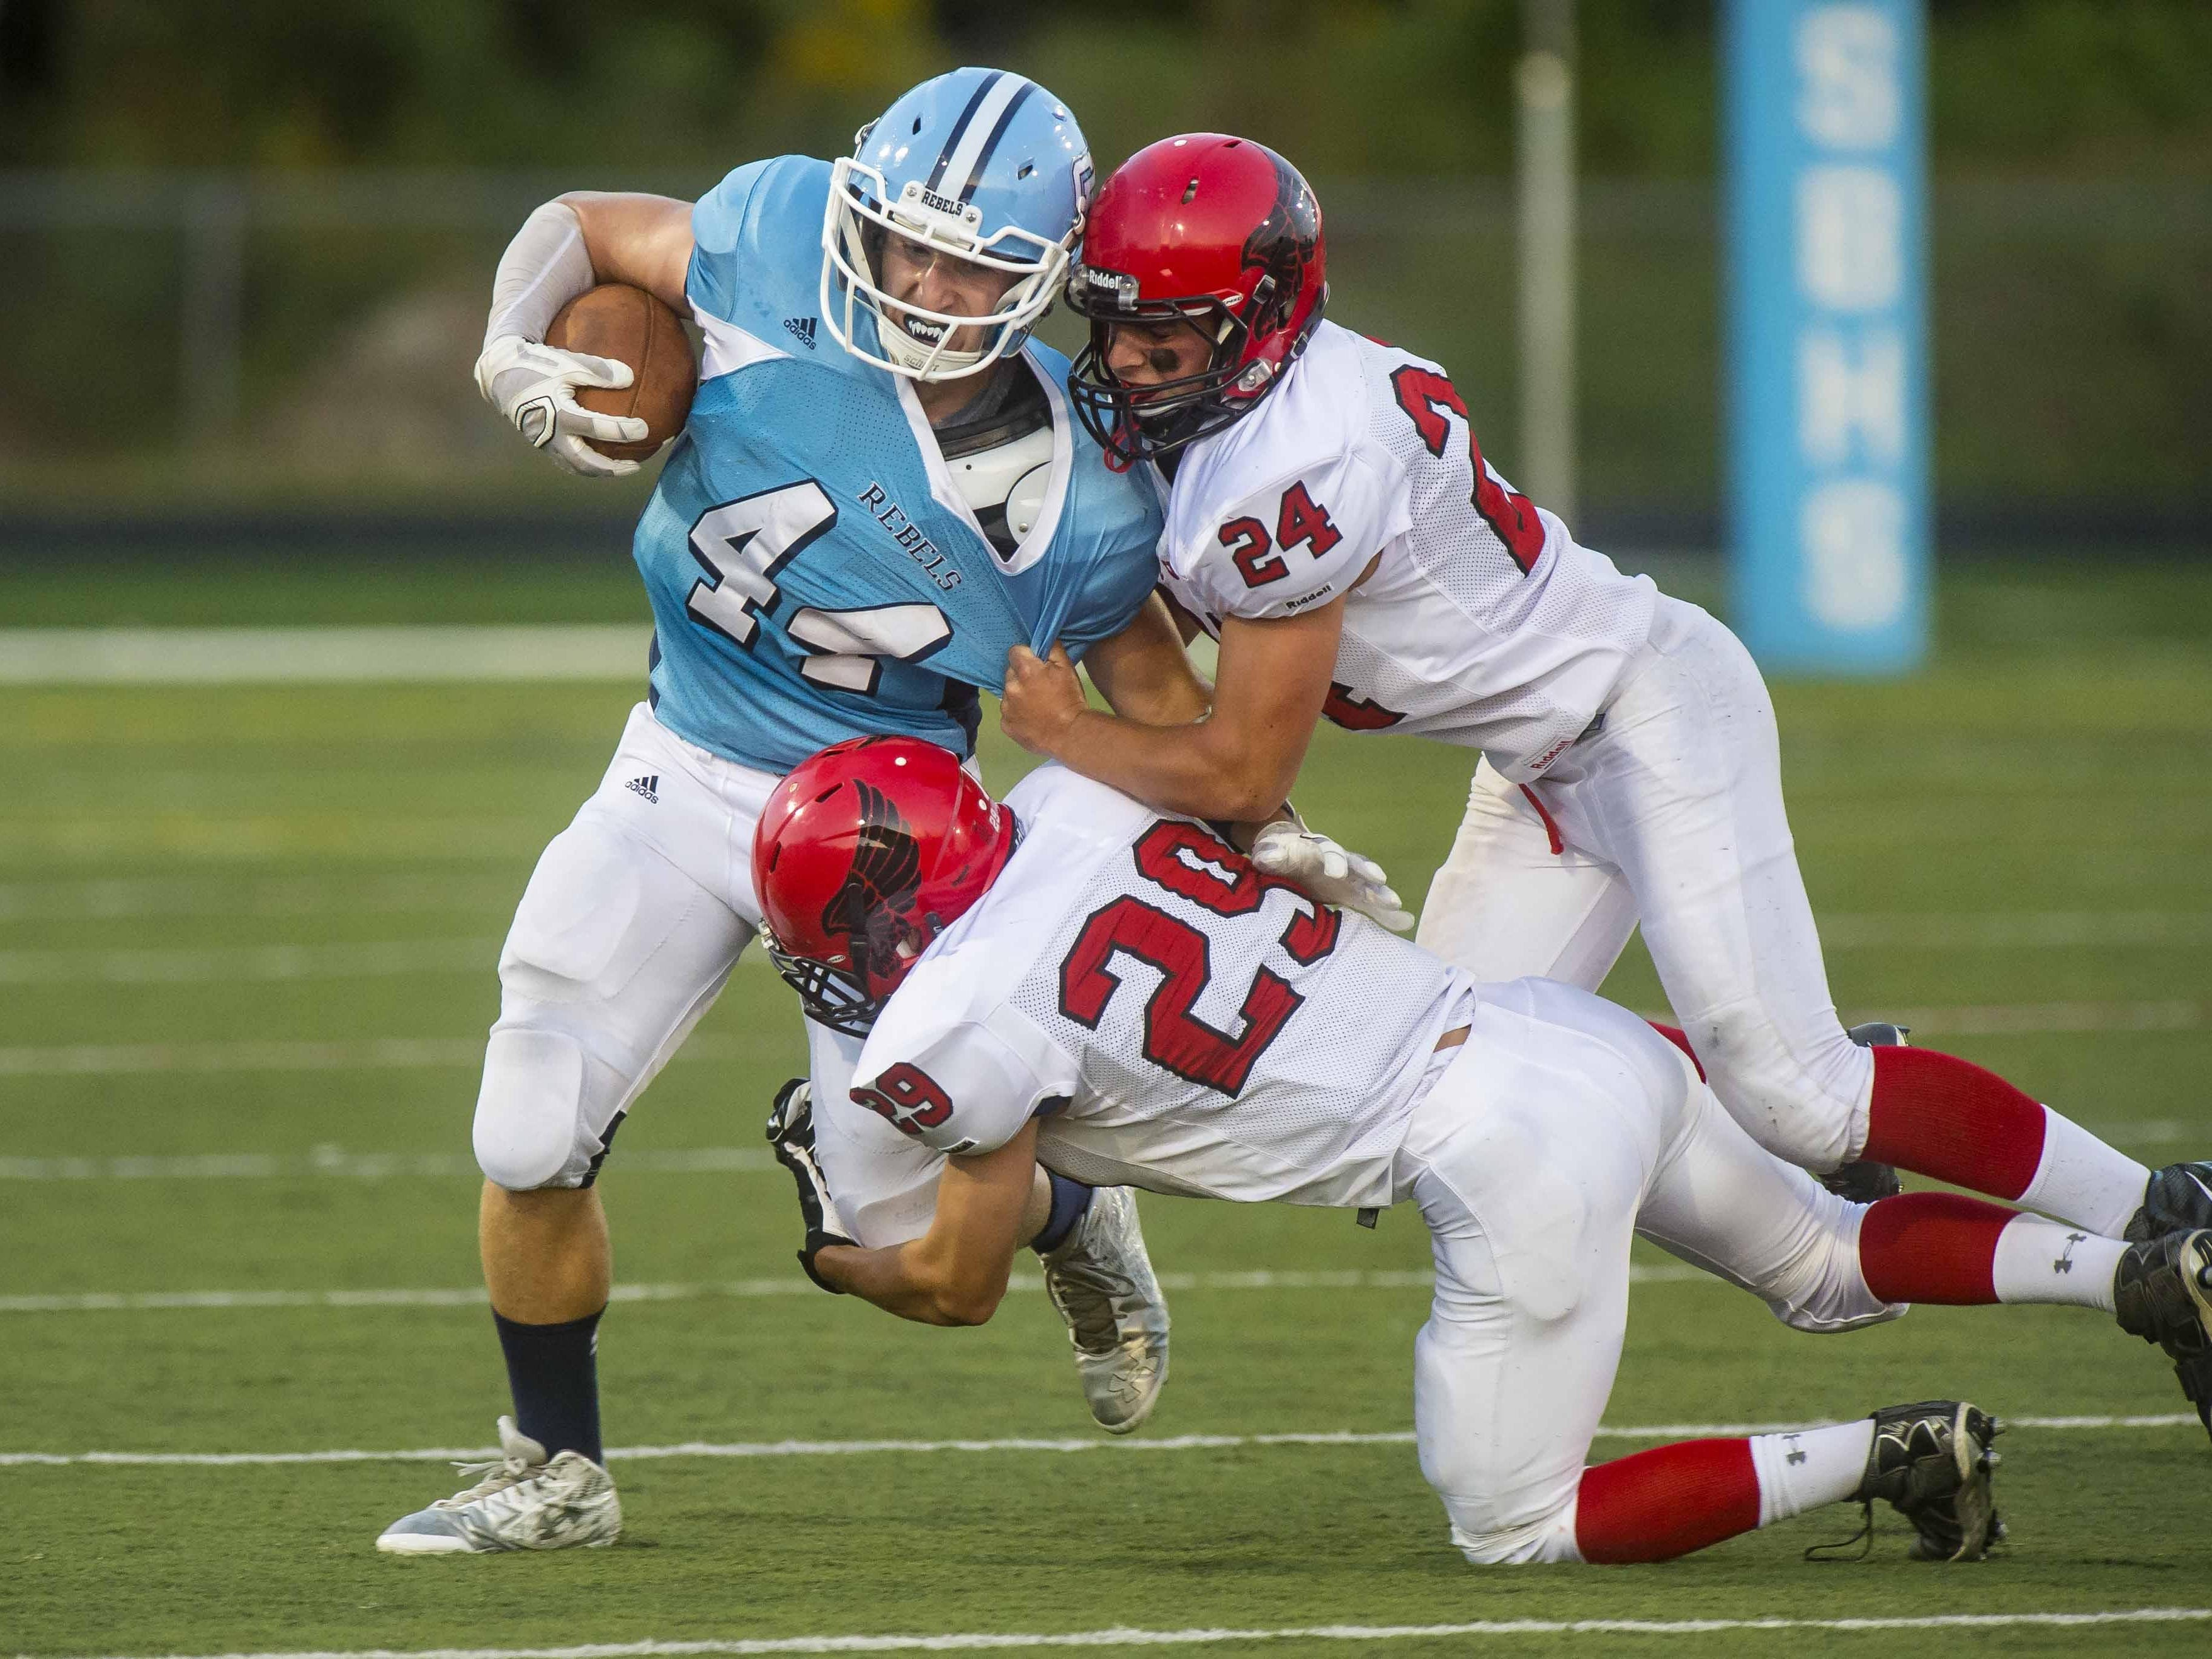 South Burlington's Jeremy Clements, left, is tackled by Champlain Valley's Nick Kinneston, top, and Braven Bose in South Burlington on Friday night.